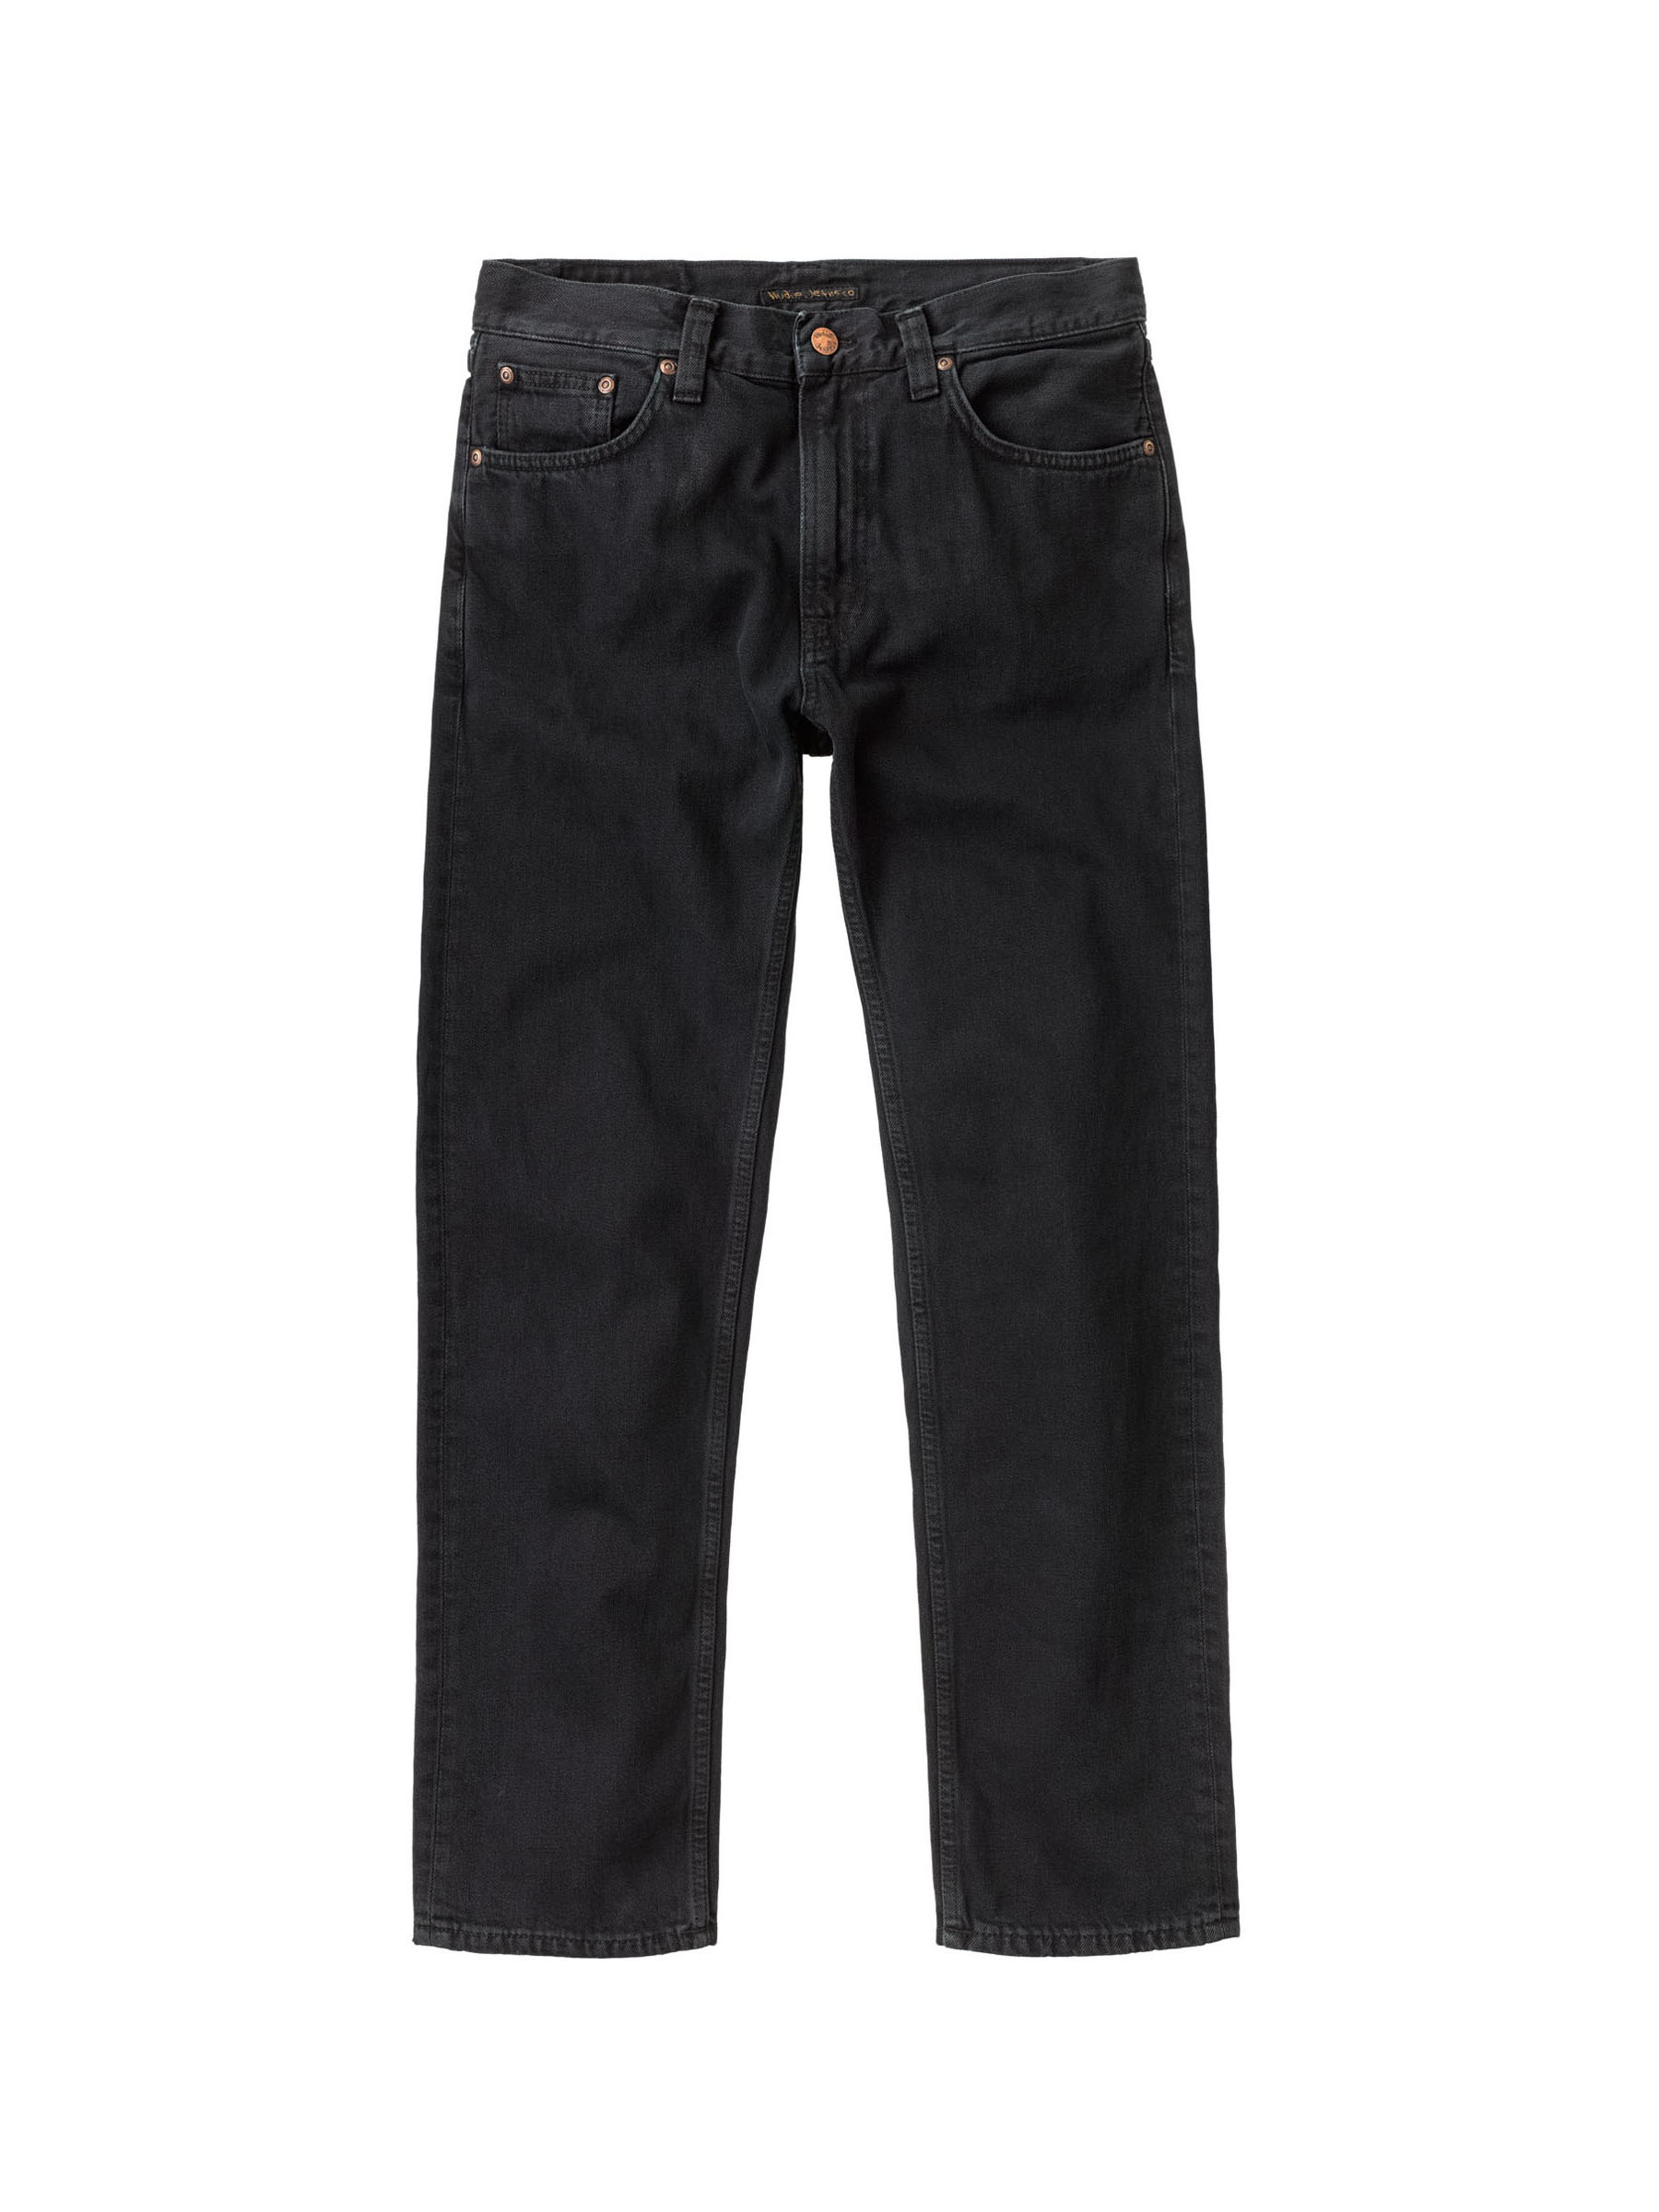 Nudie Jeans Gritty Jackson